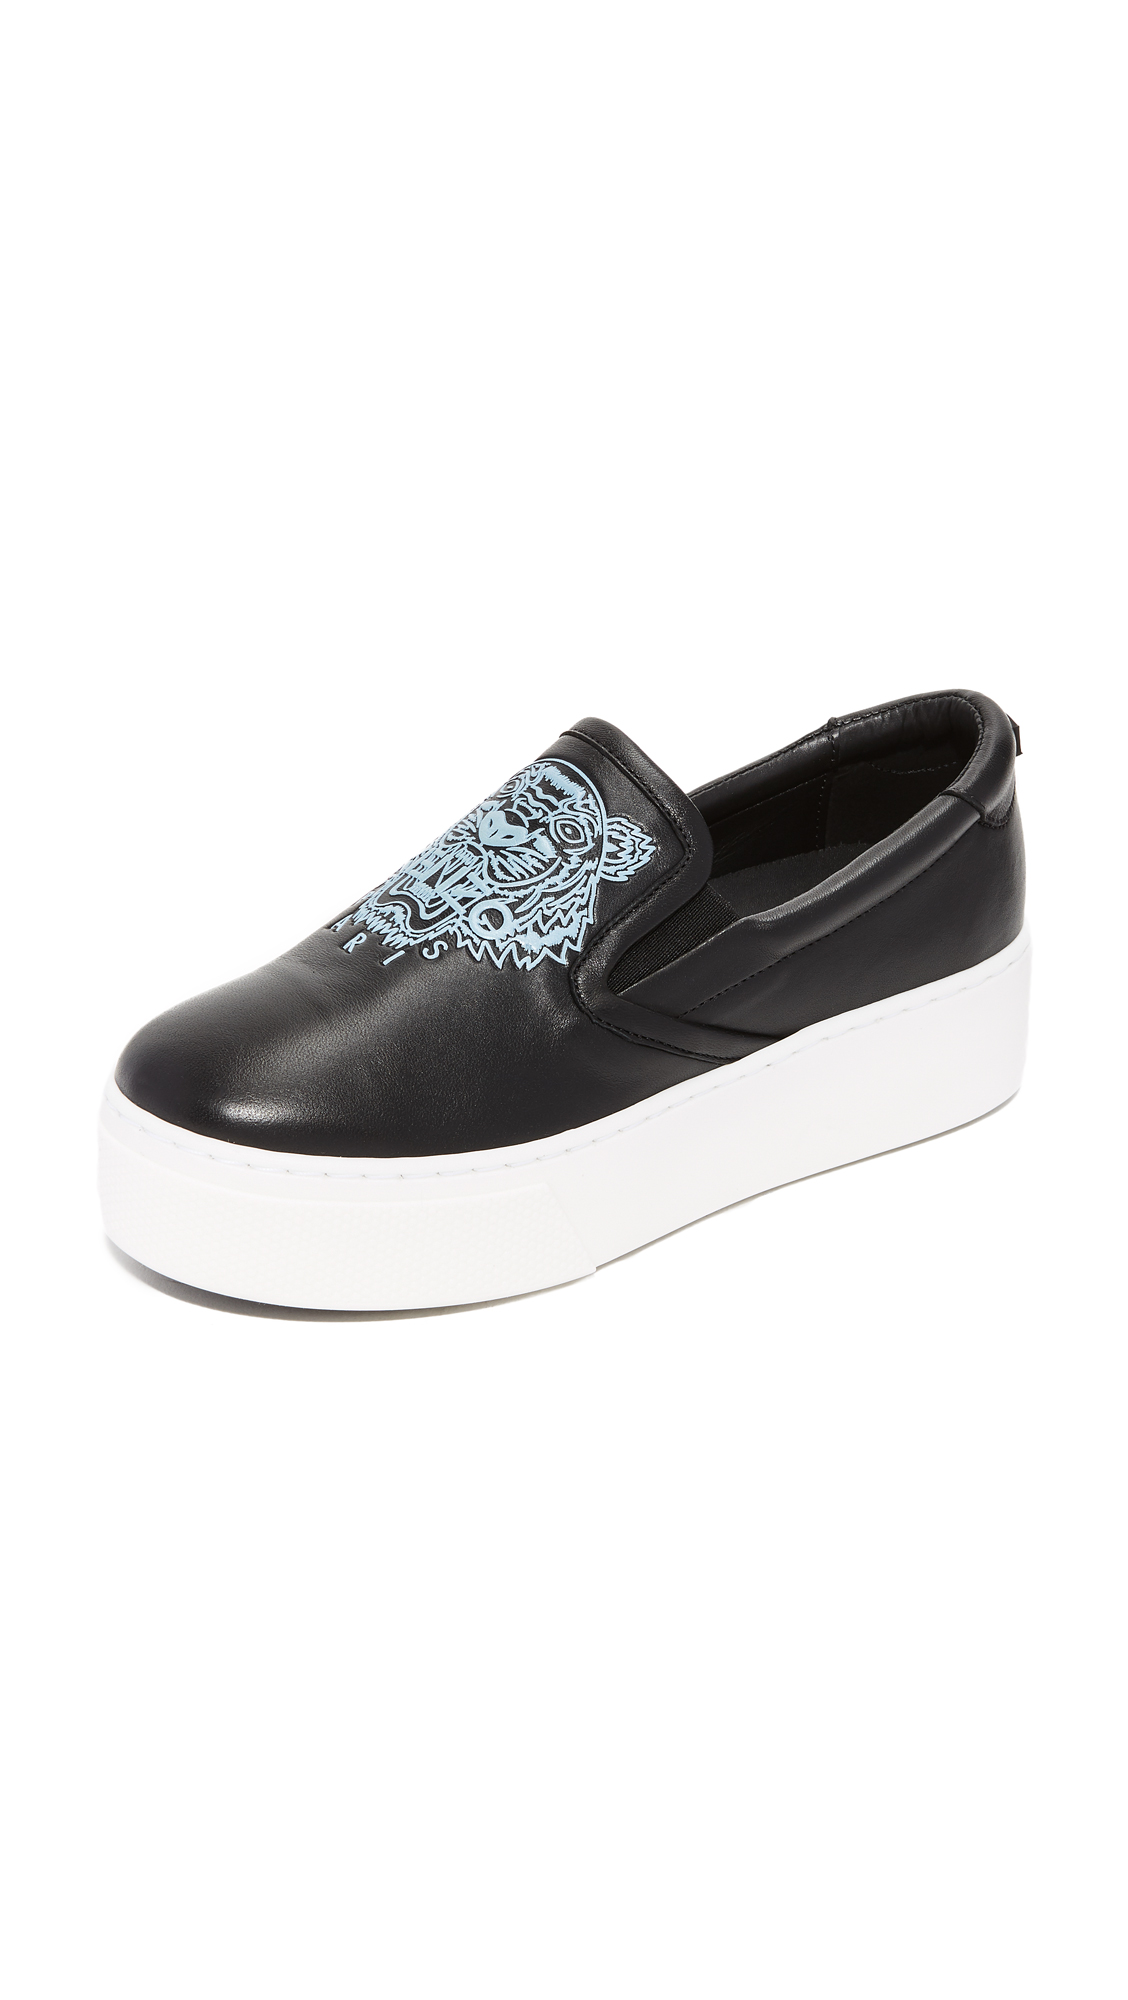 KENZO Kpy Platform Slip On Sneakers - Black